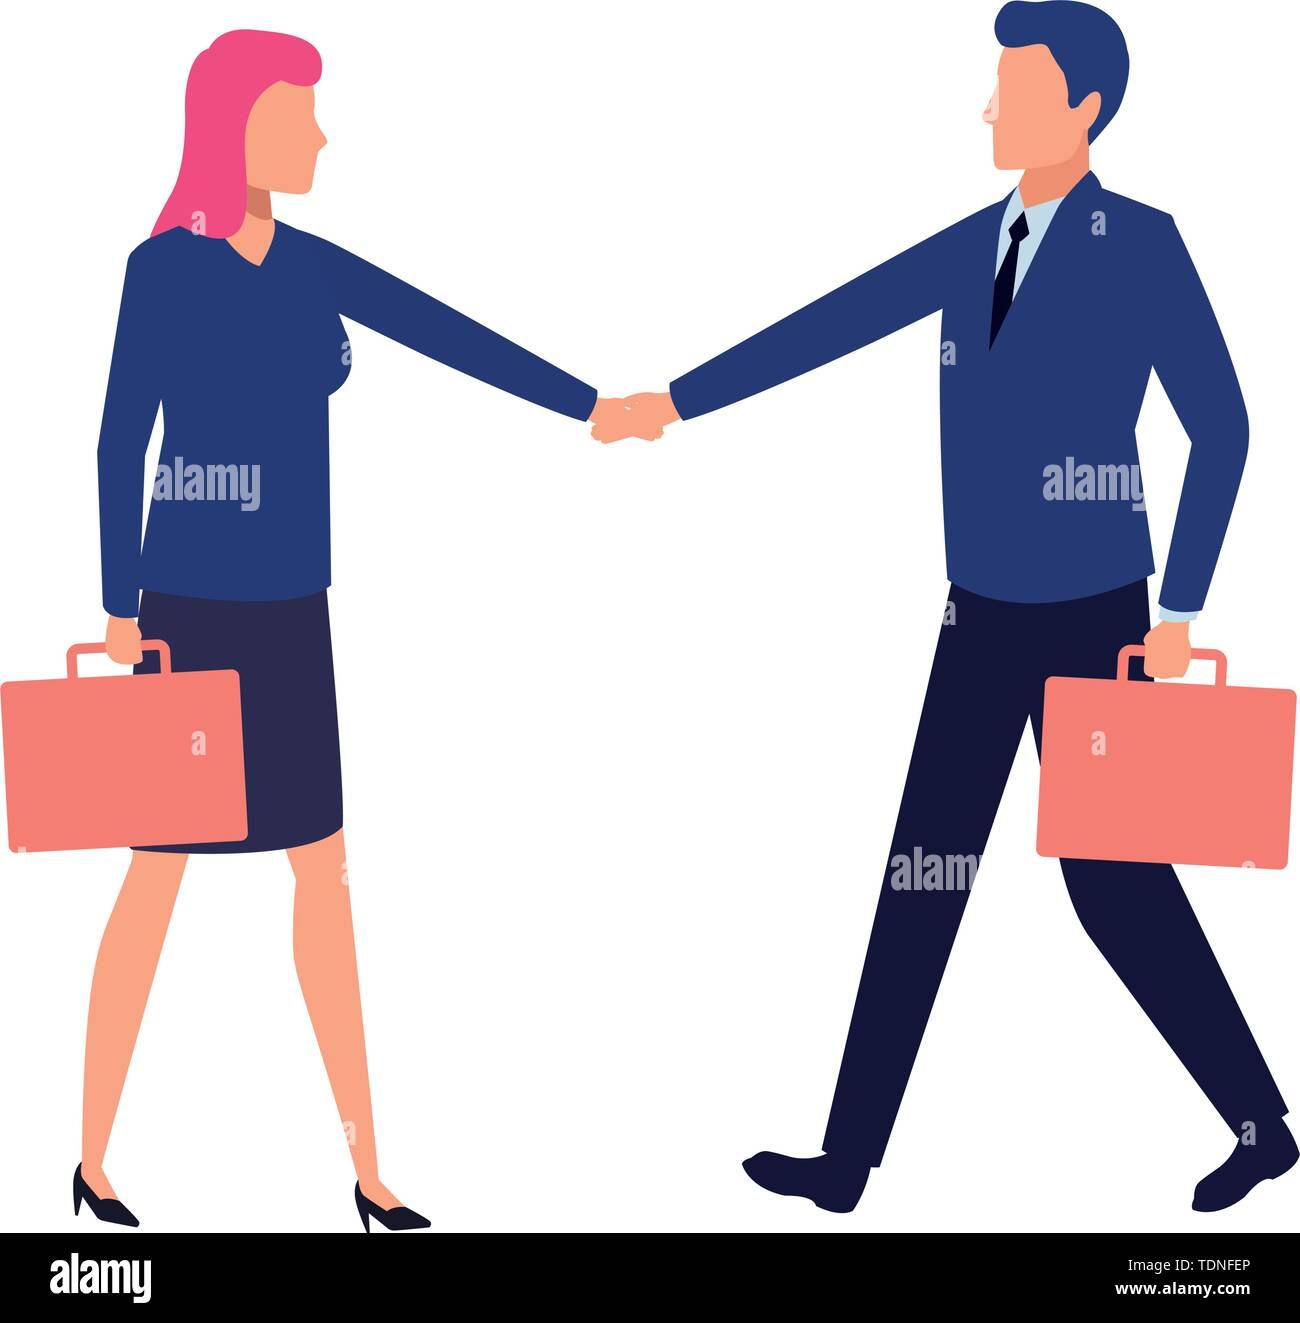 business business people businessman and businesswoman shaking hands and carrying a briefcase avatar cartoon character vector illustration graphic des - Stock Image